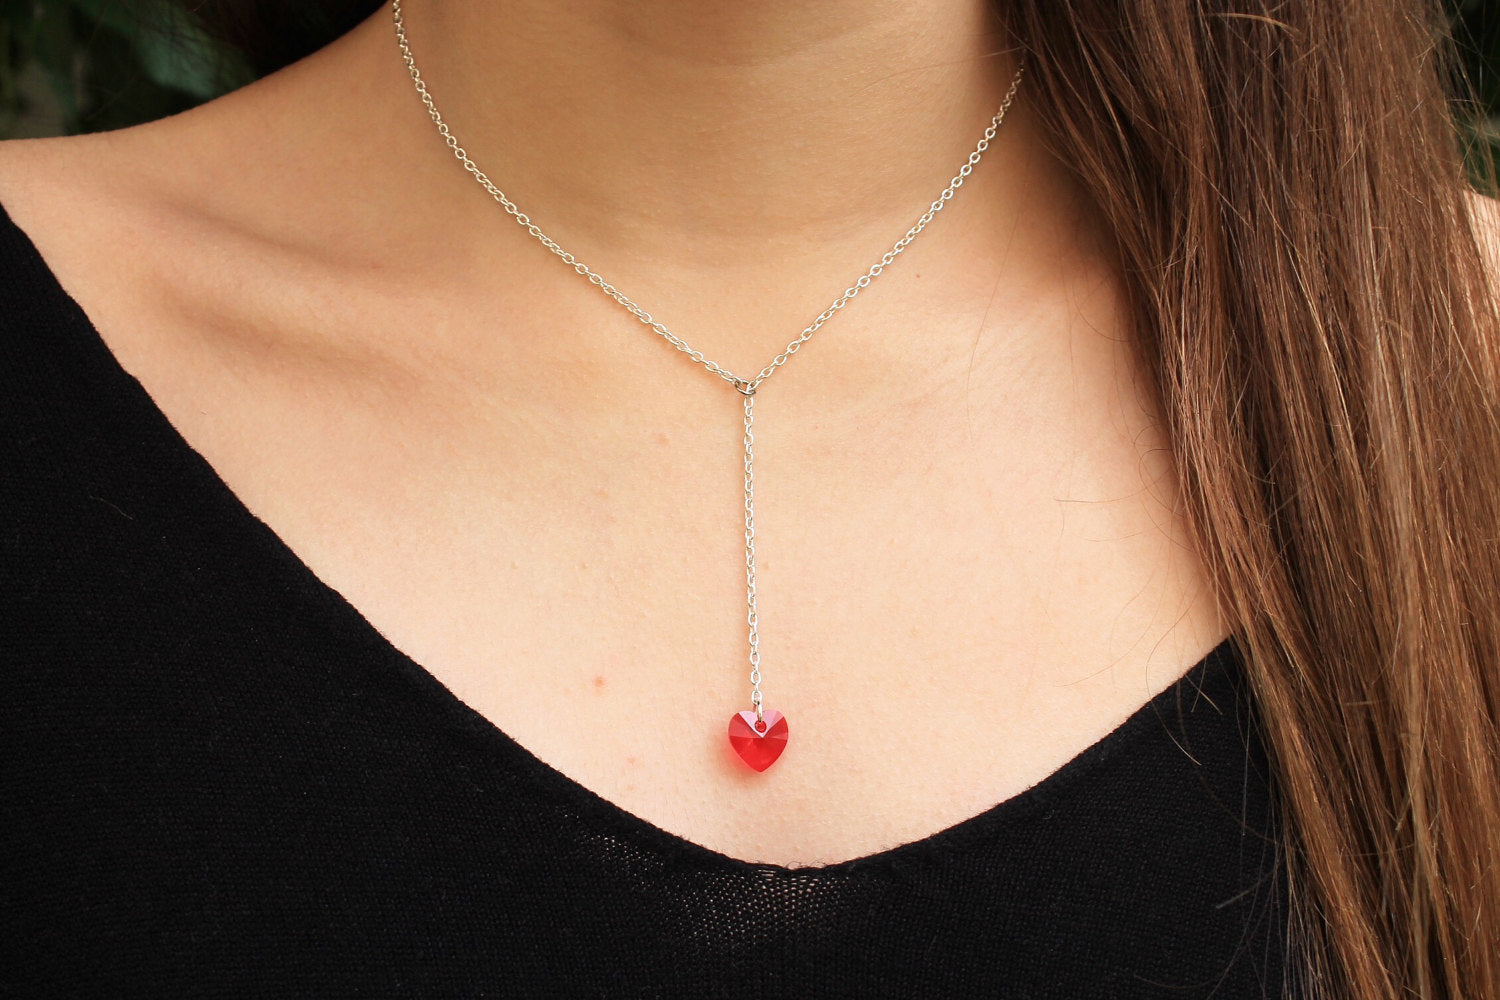 Swaroski - Swarovski crystal heart with silver chain necklace